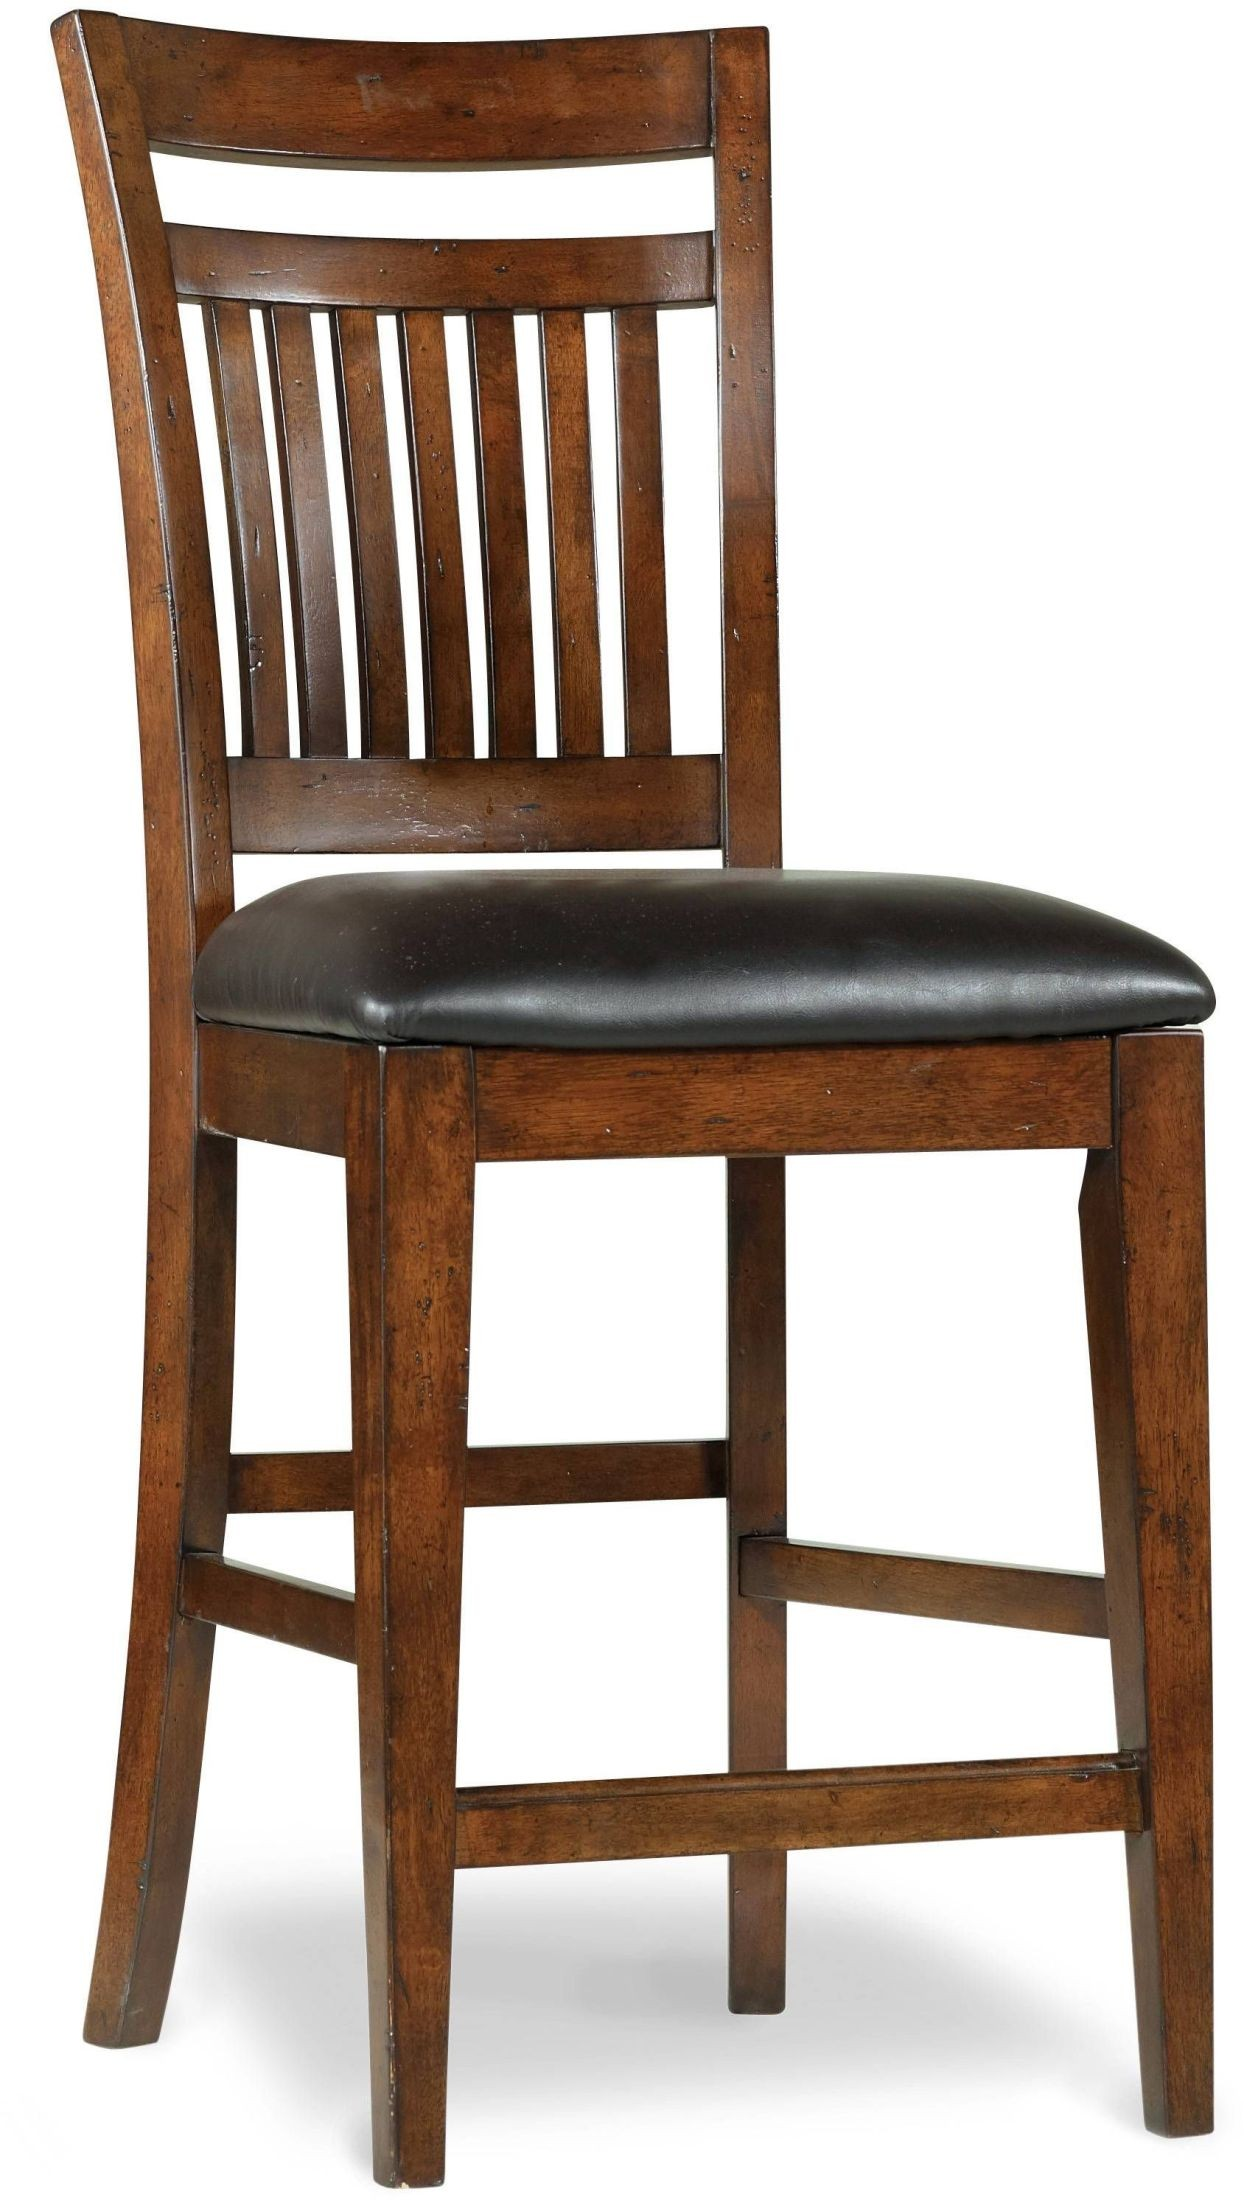 Bar Height Dining Chairs Wendover Cherry Counter Height Chair Set Of 2 From Hooker